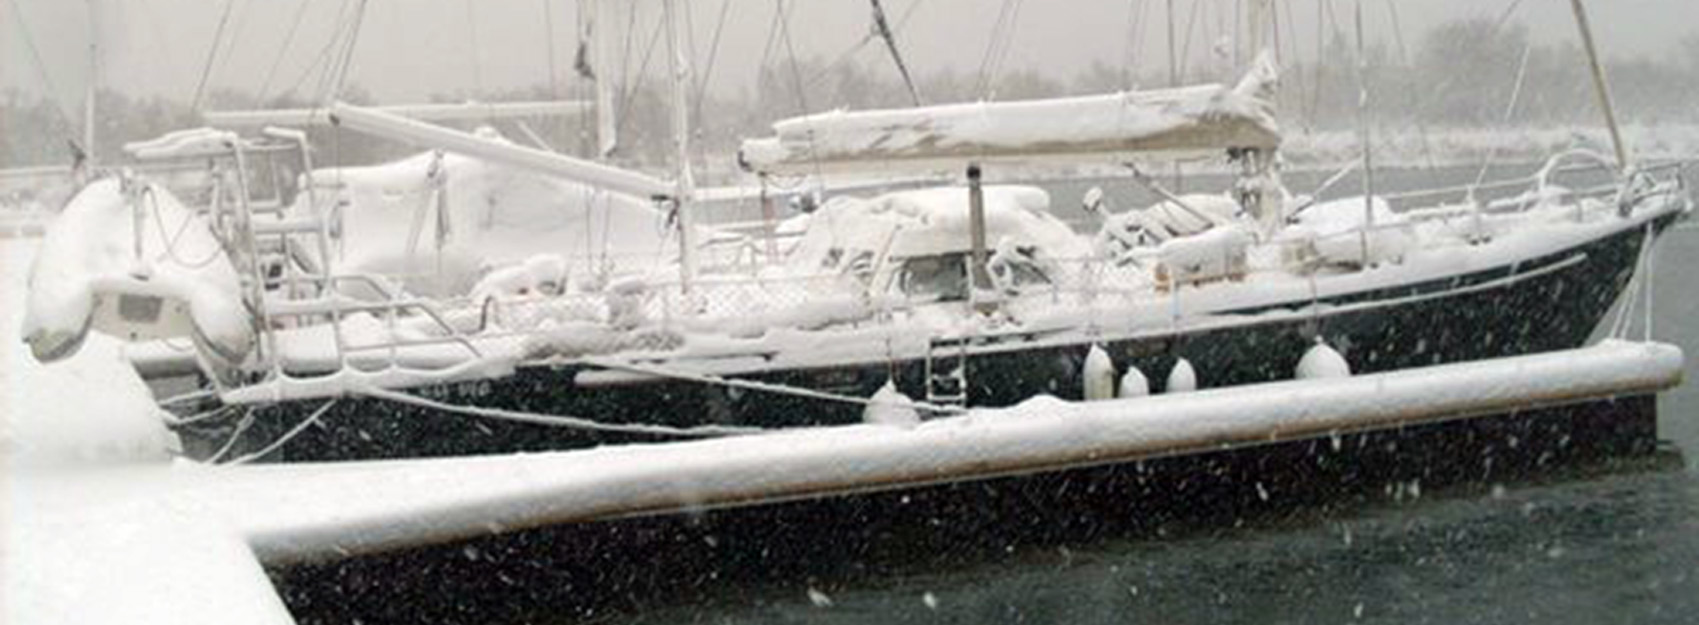 January 7. 2009 in Port Napolen